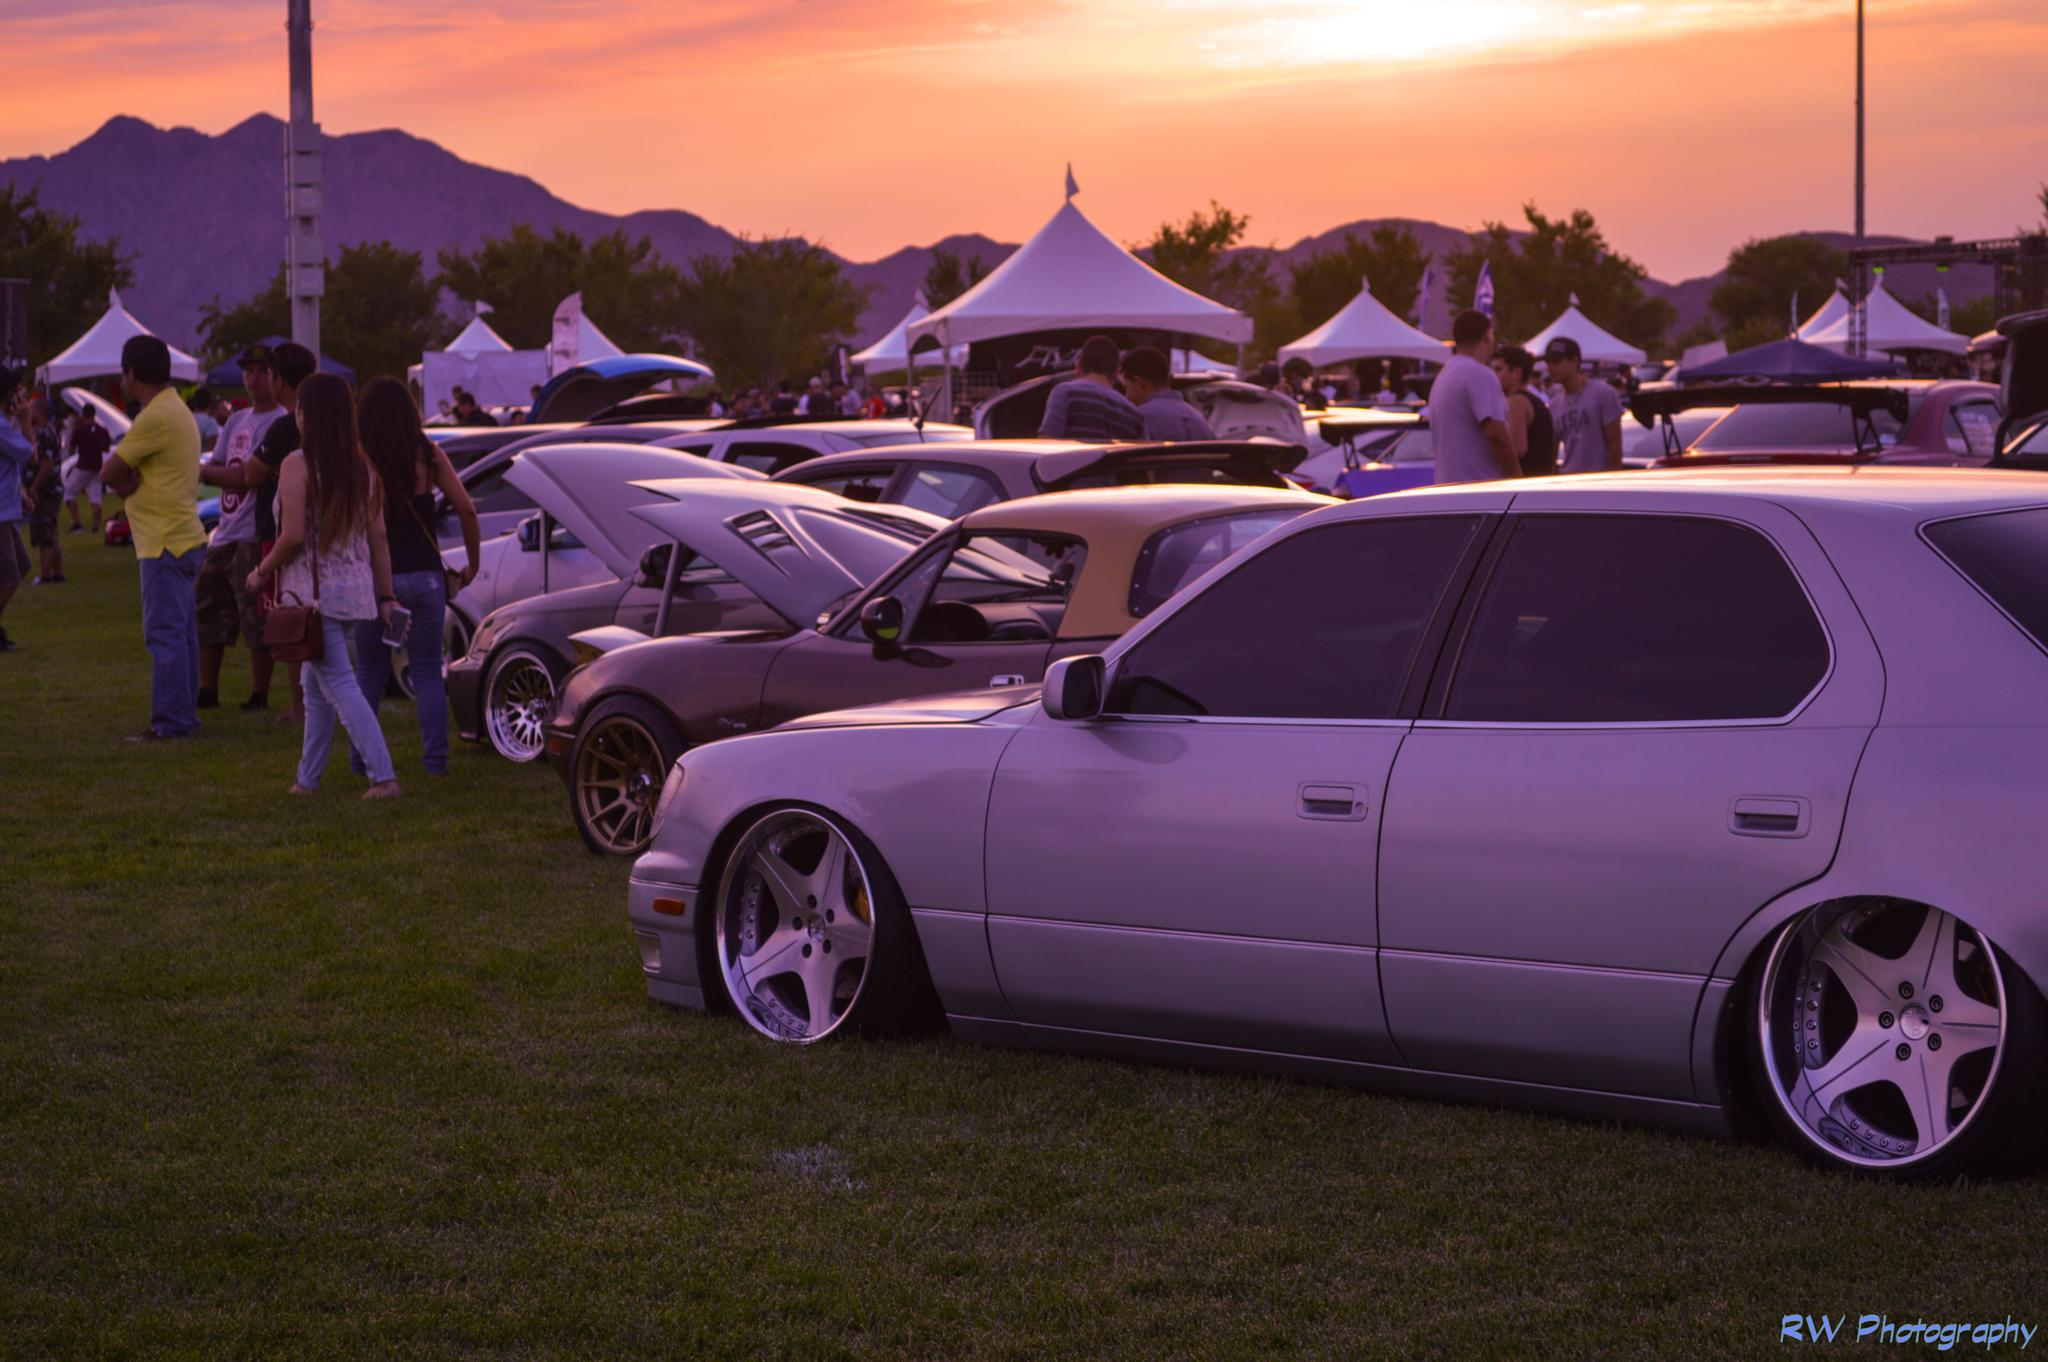 E.O.S. Car Showcase Sundown Capture by Rod Wash